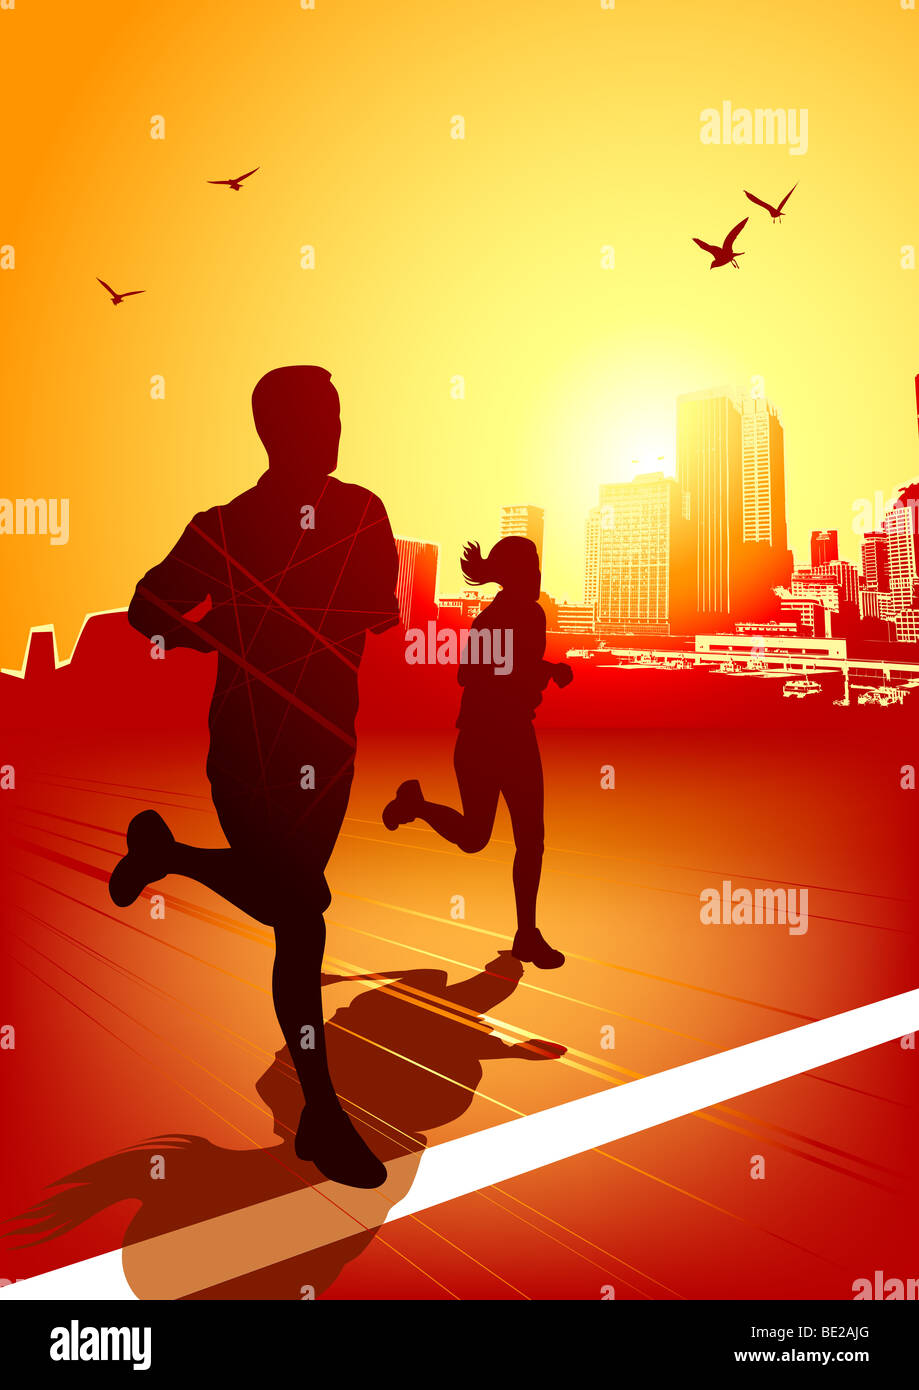 A man and women running on a sunny evening with the city in the background. - Stock Image